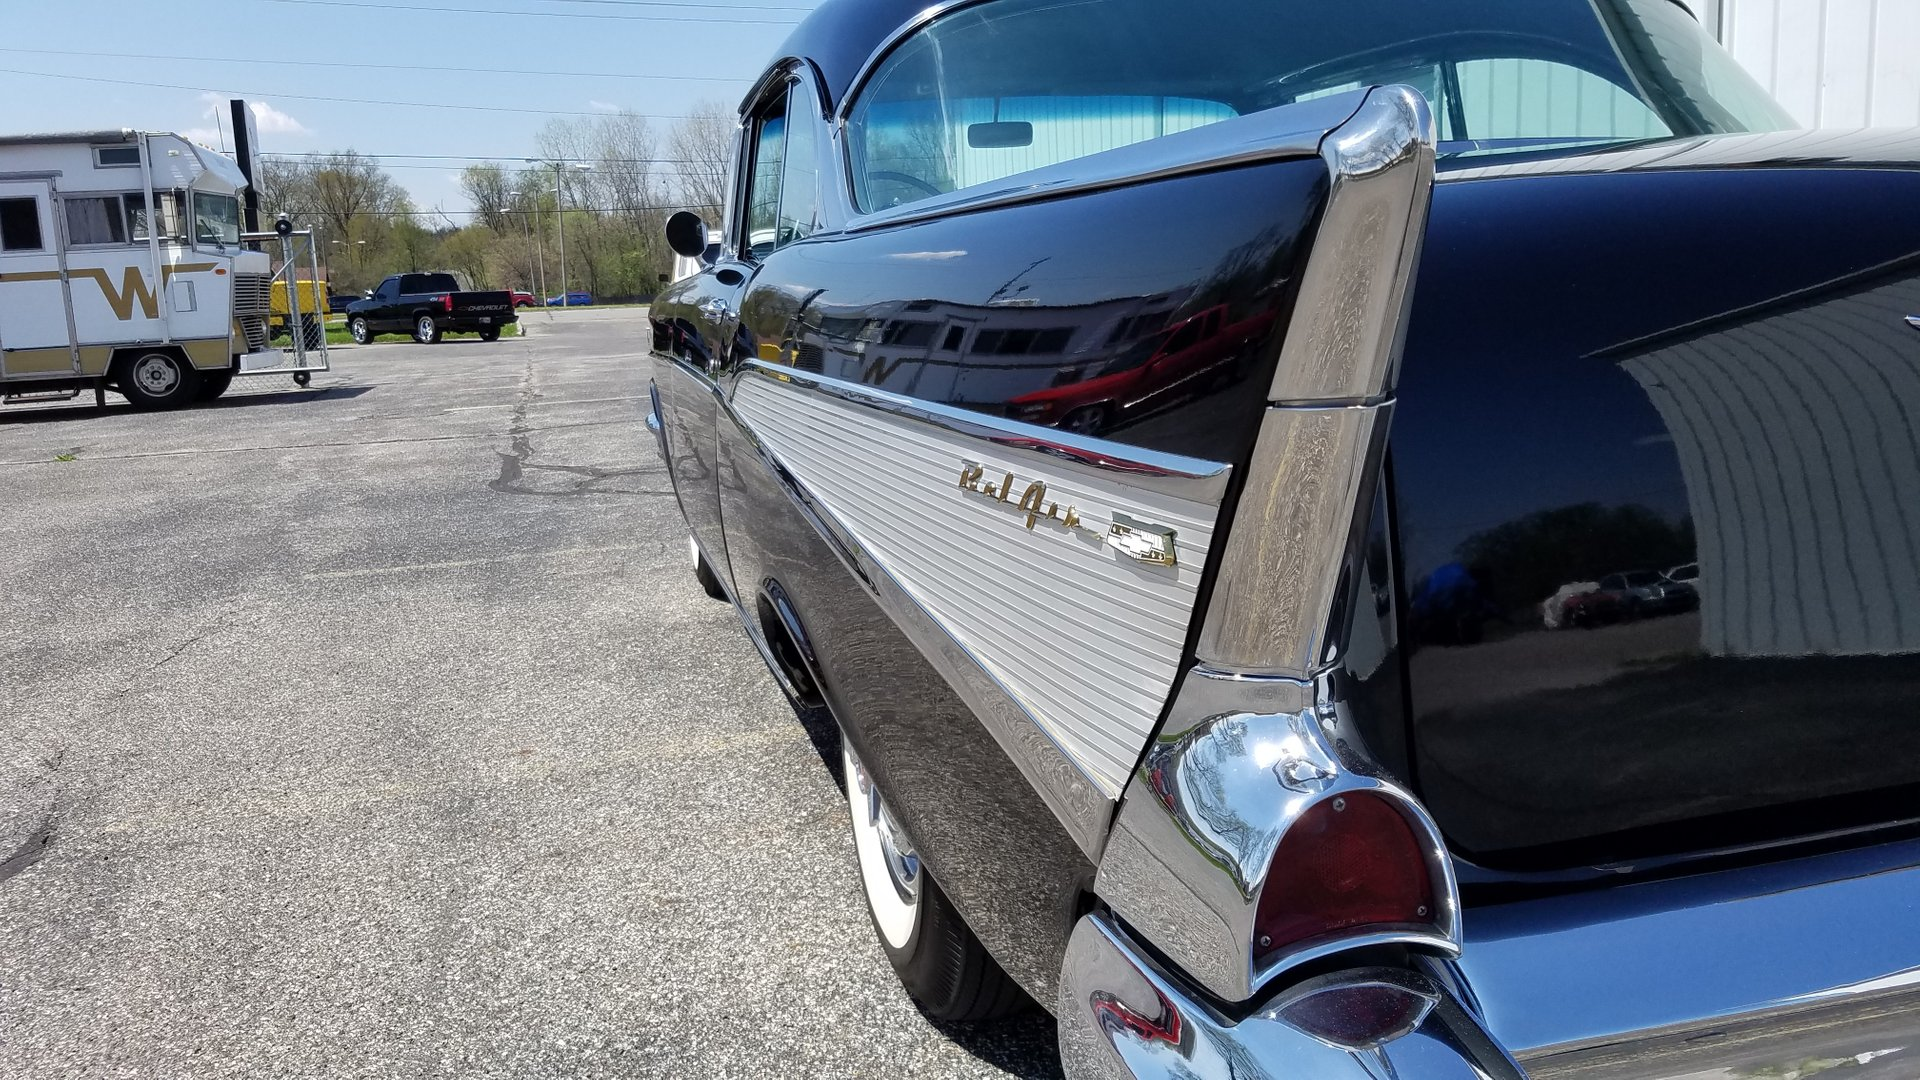 1957 Chevrolet Bel Air Rock Solid Motorsports Chevy Station Wagon